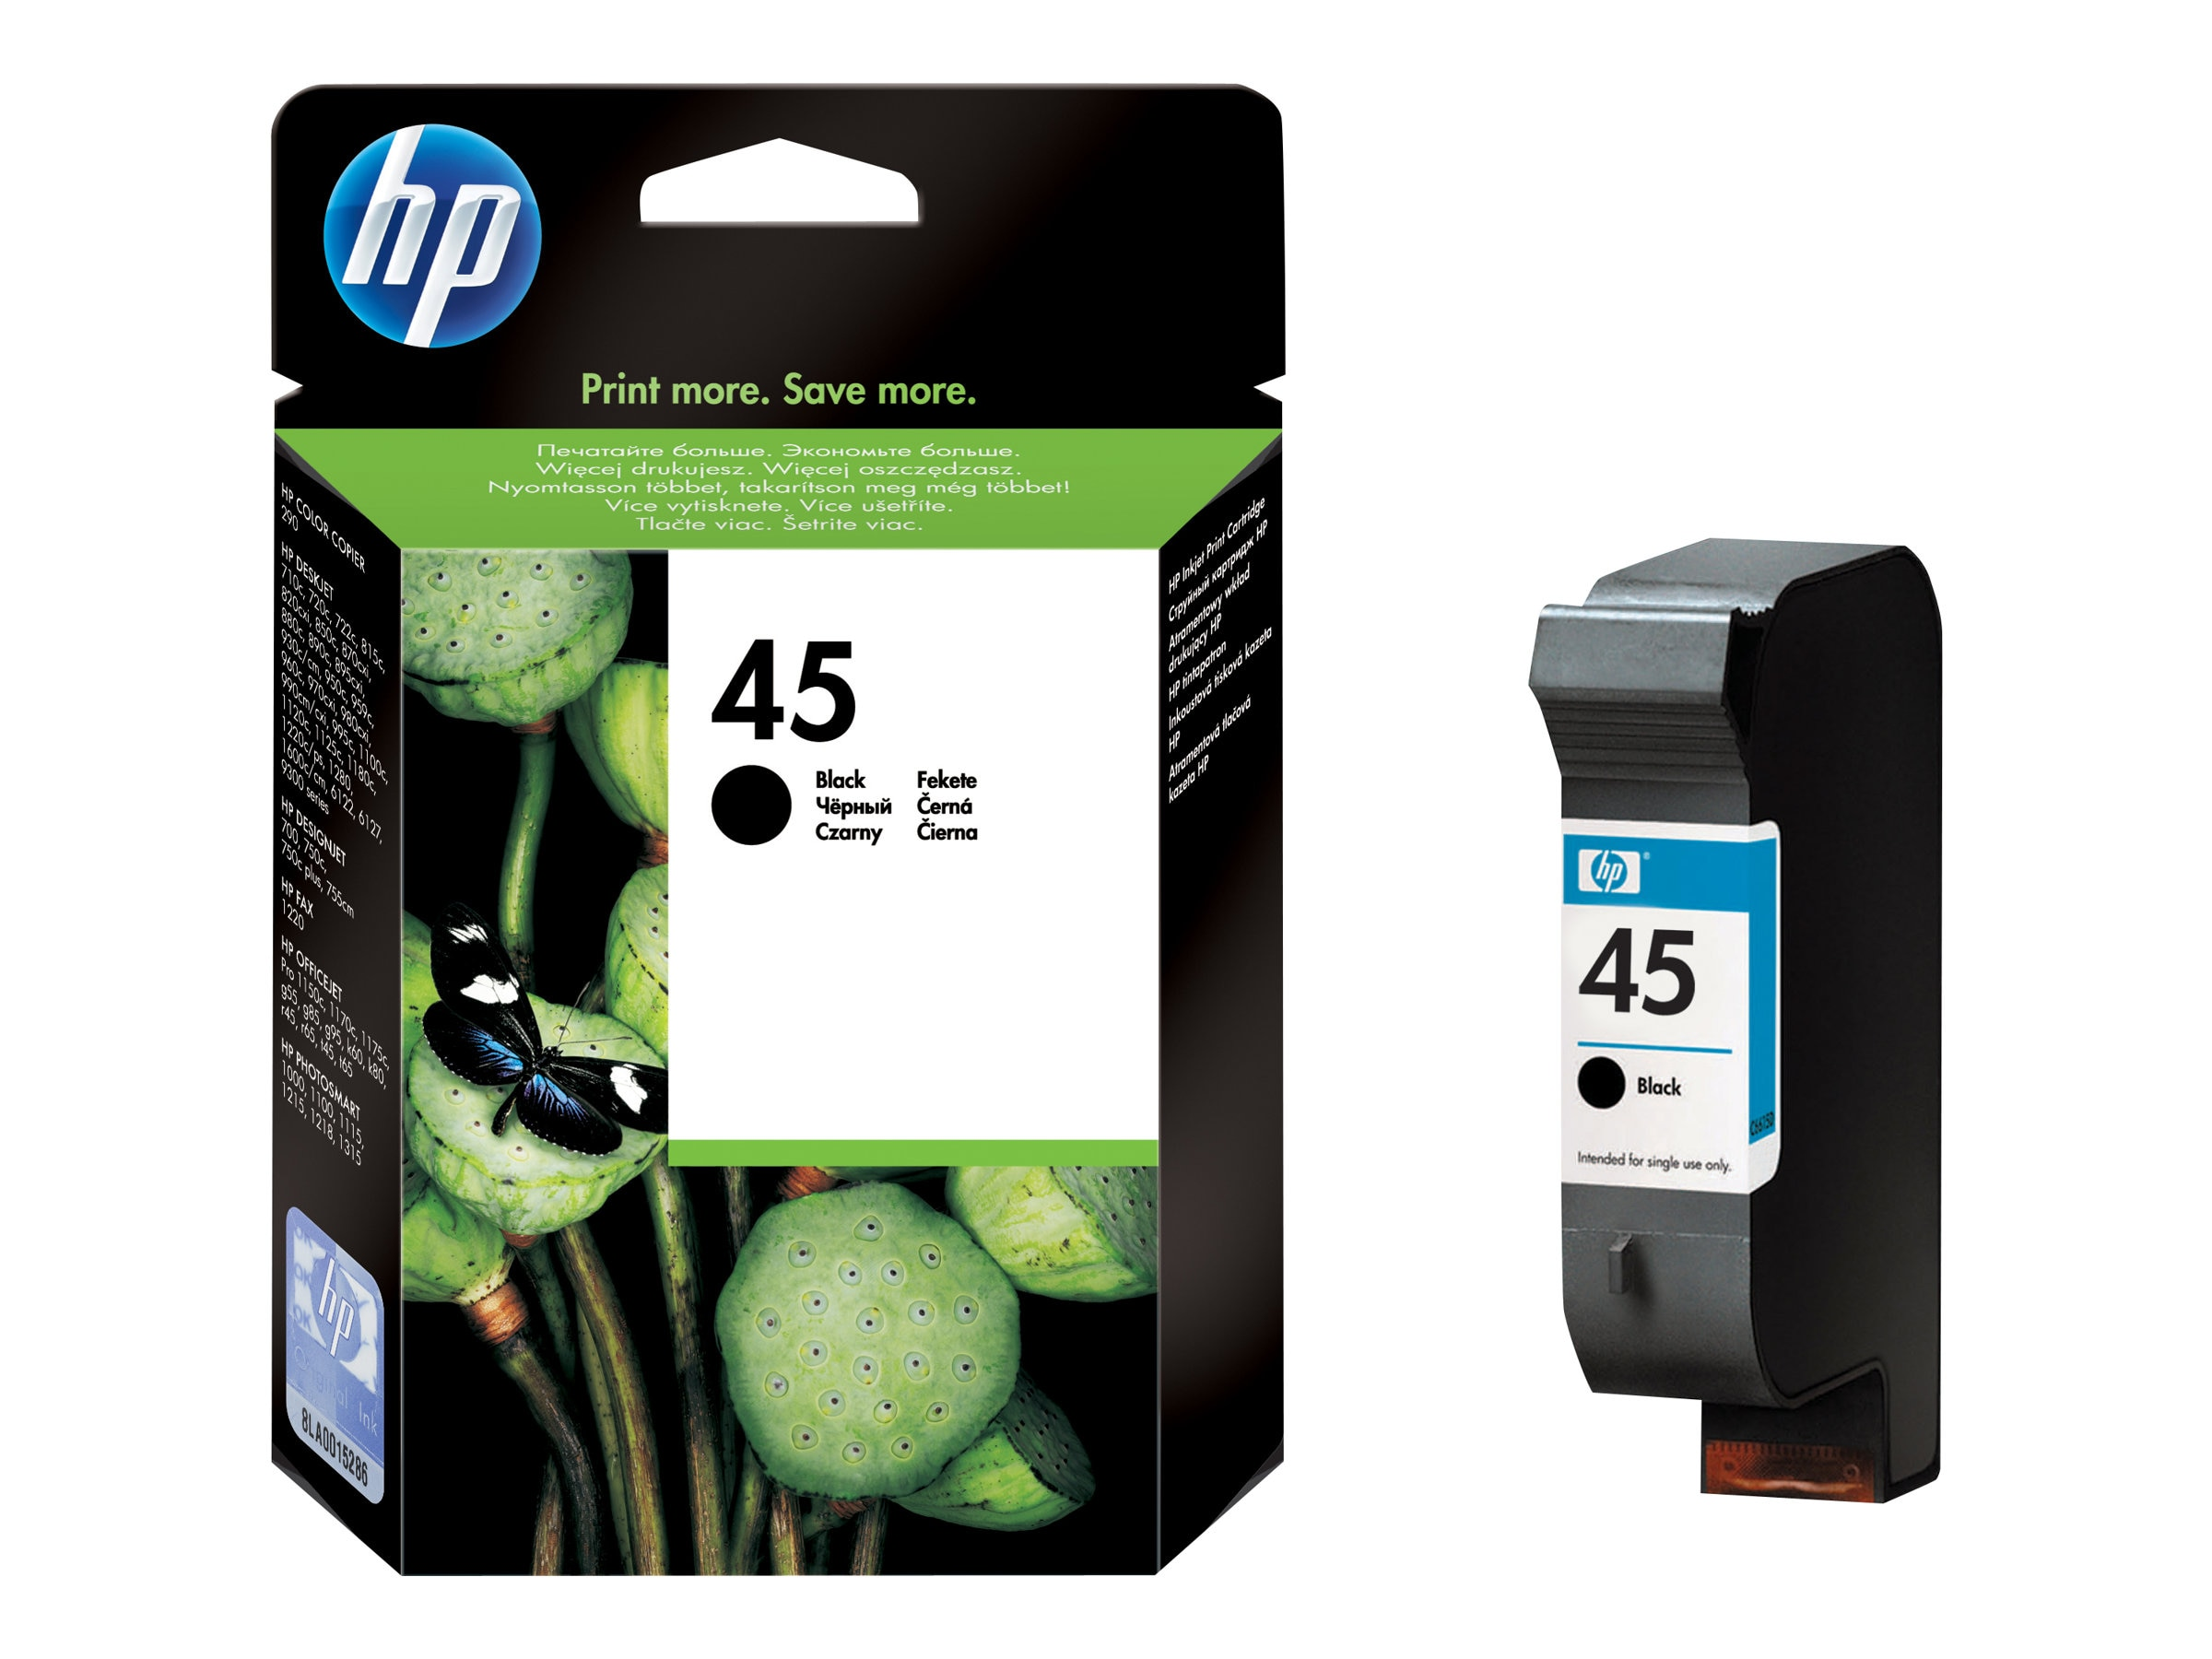 HP 45 (51645A) Black Original Ink Cartridge, 51645A#140, 9884949, Ink Cartridges & Ink Refill Kits